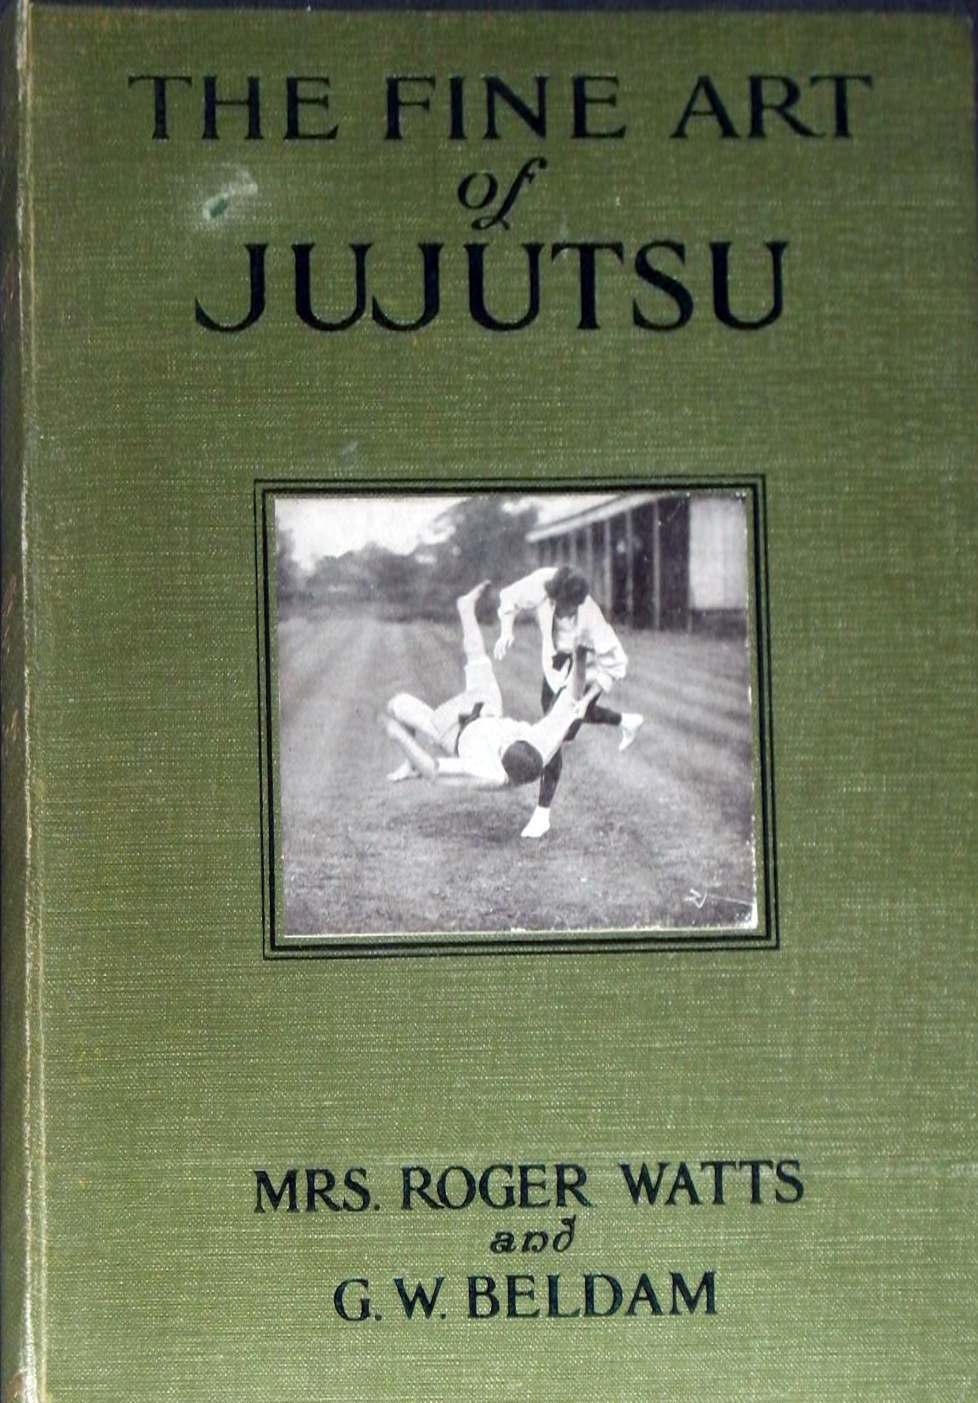 Cover of 'The Fine Art of Jujutsu' by Mrs Roger Watts and published in 1906